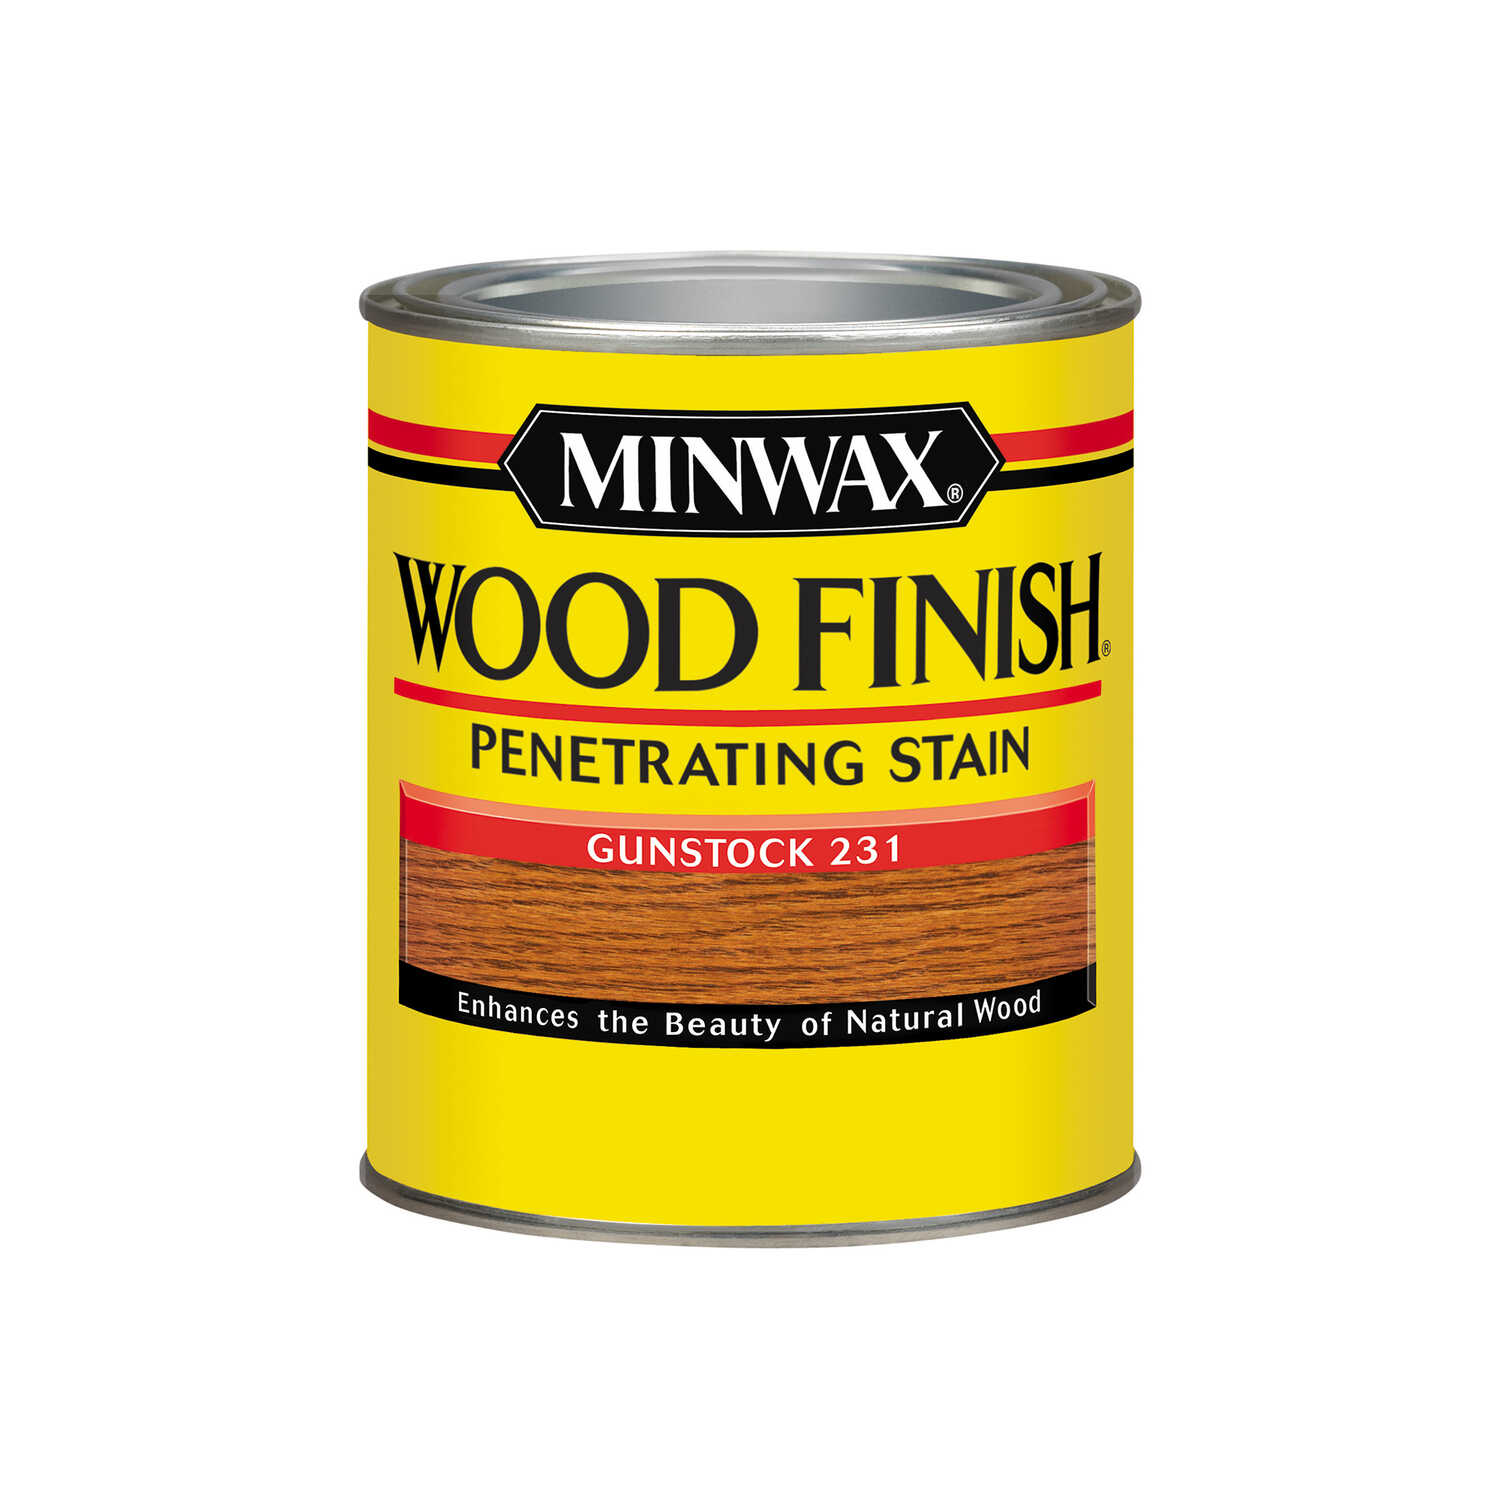 Minwax  Wood Finish  Semi-Transparent  Gunstock  Oil-Based  Oil  Wood Stain  1 qt.